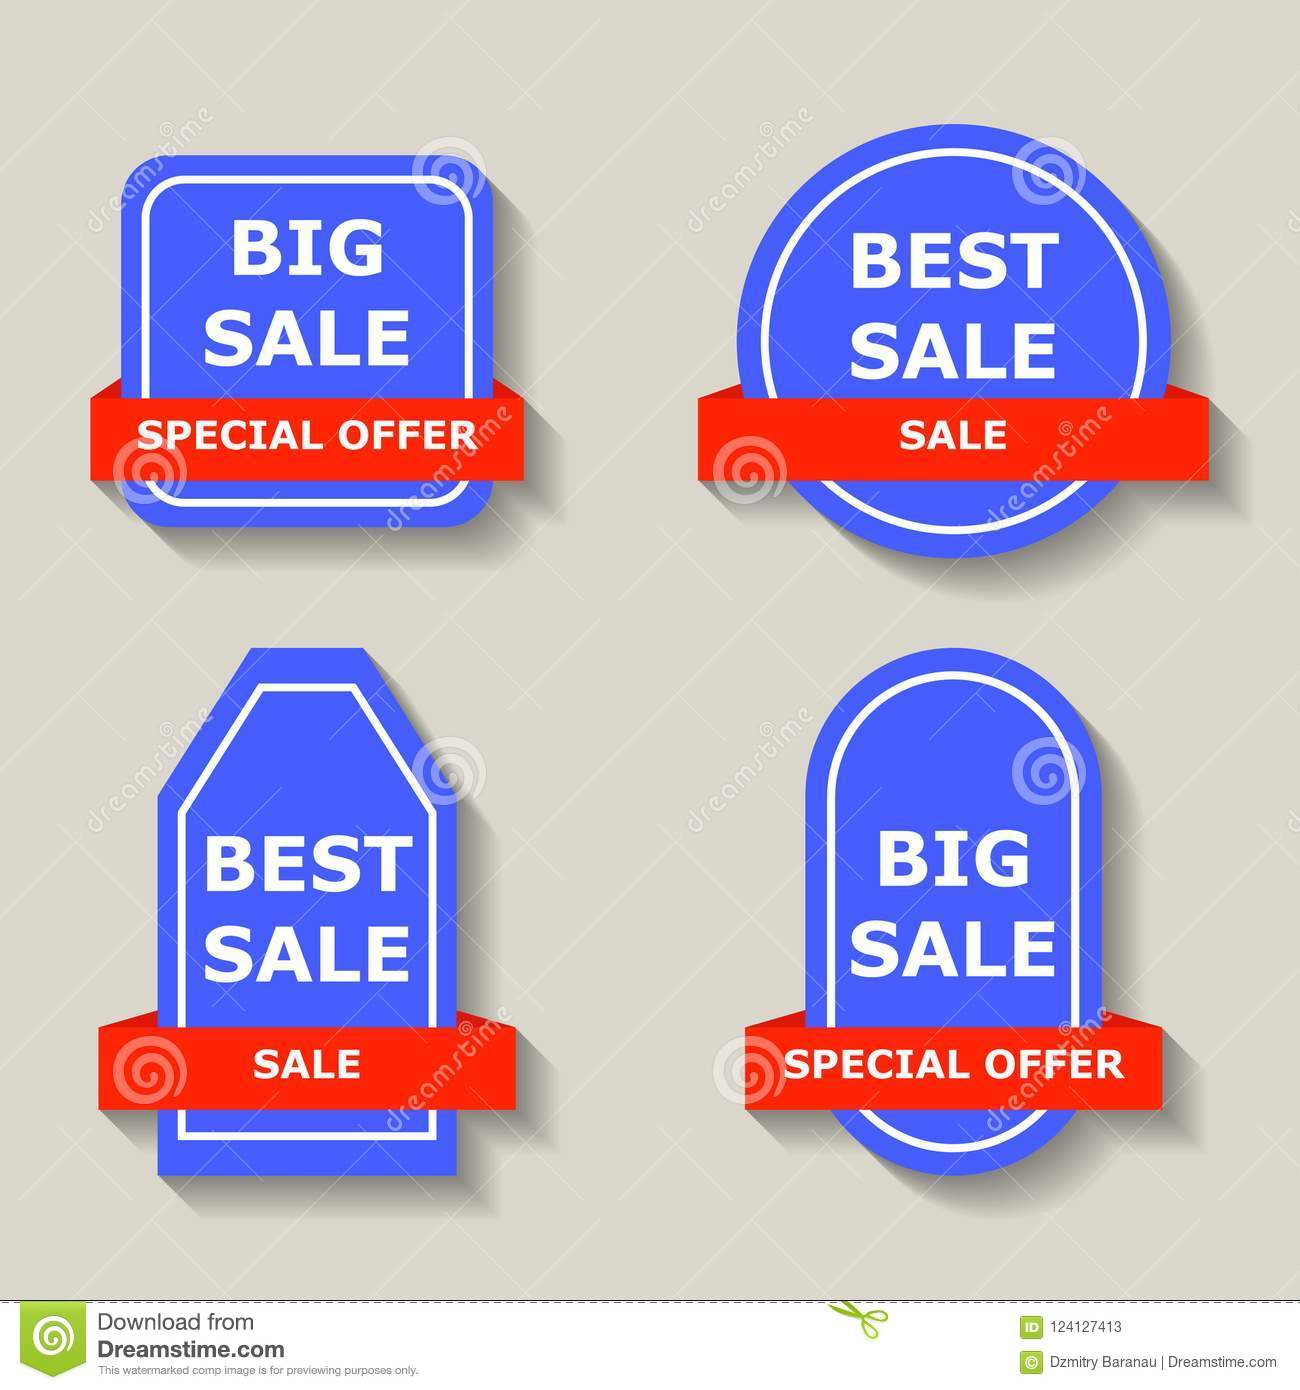 Offer Tag Banner Fashion Symbol Isolated Concept Red Advertising Design Paper Flyer Sign Blue Retail Summer Special Sticker Gift Shape Card